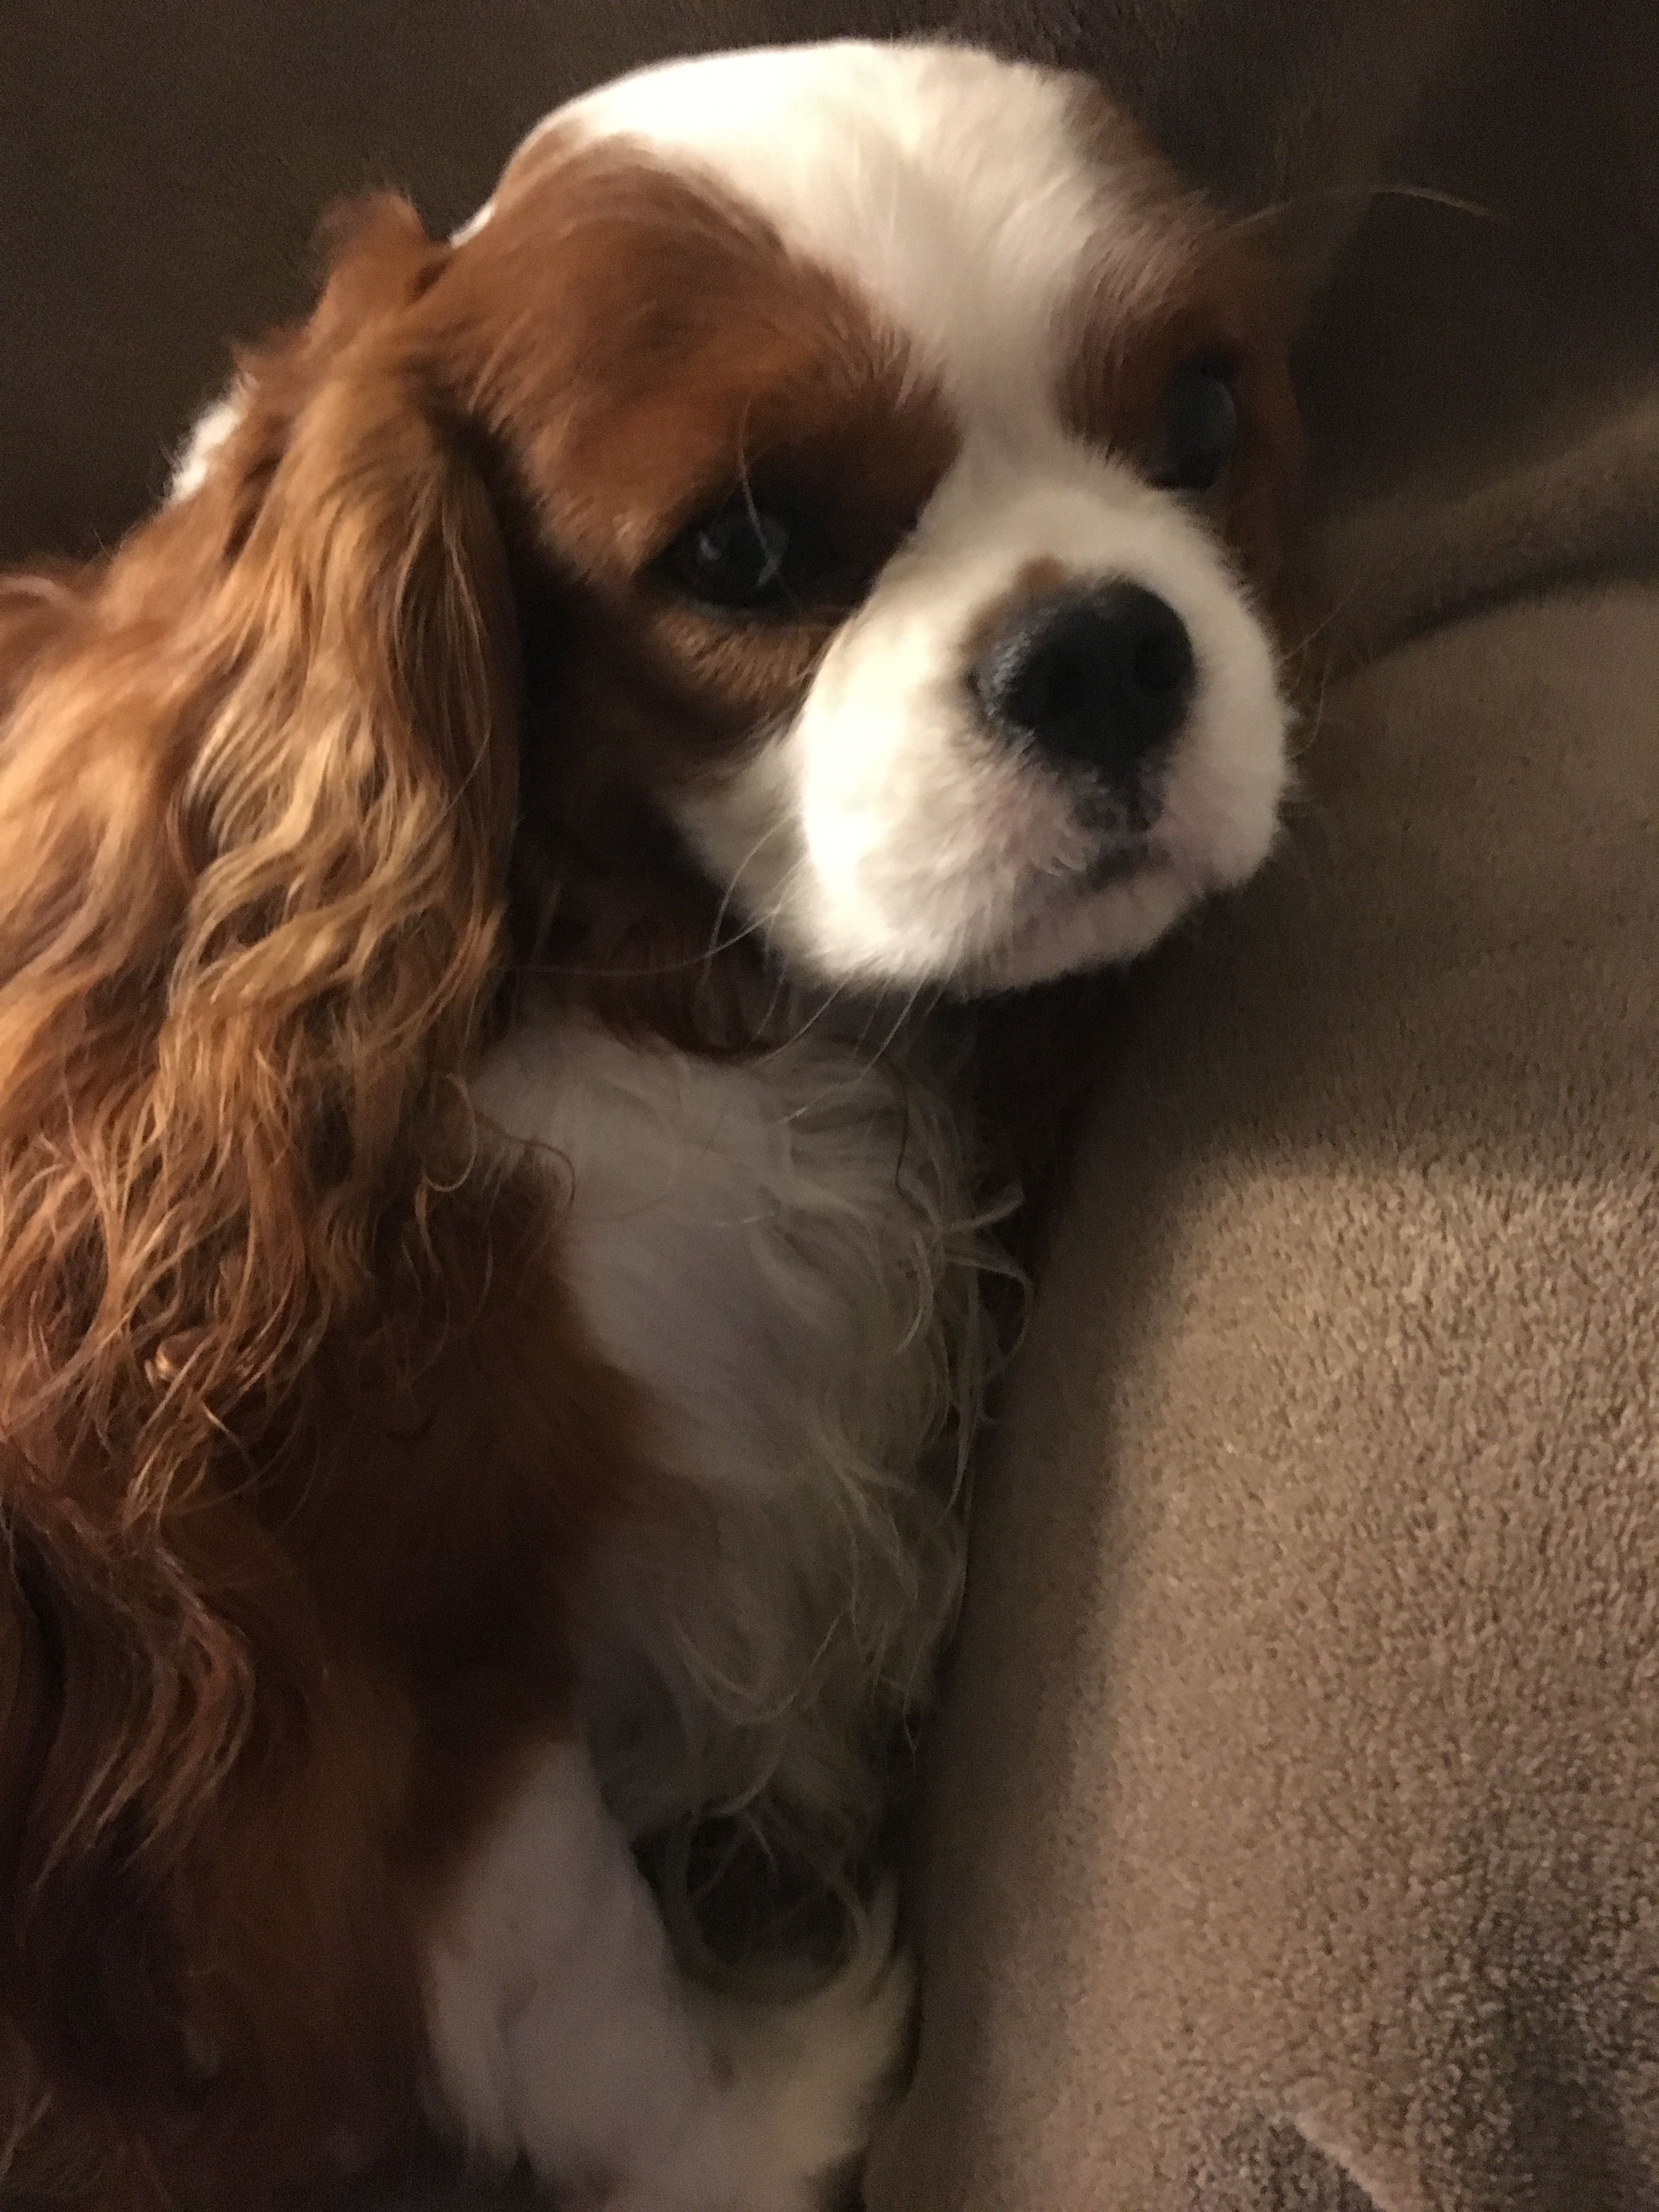 Pin By Tina Phillips On Cavalier King Charles Spaniels Cavalier King Charles Dog King Charles Dog Cavalier King Charles